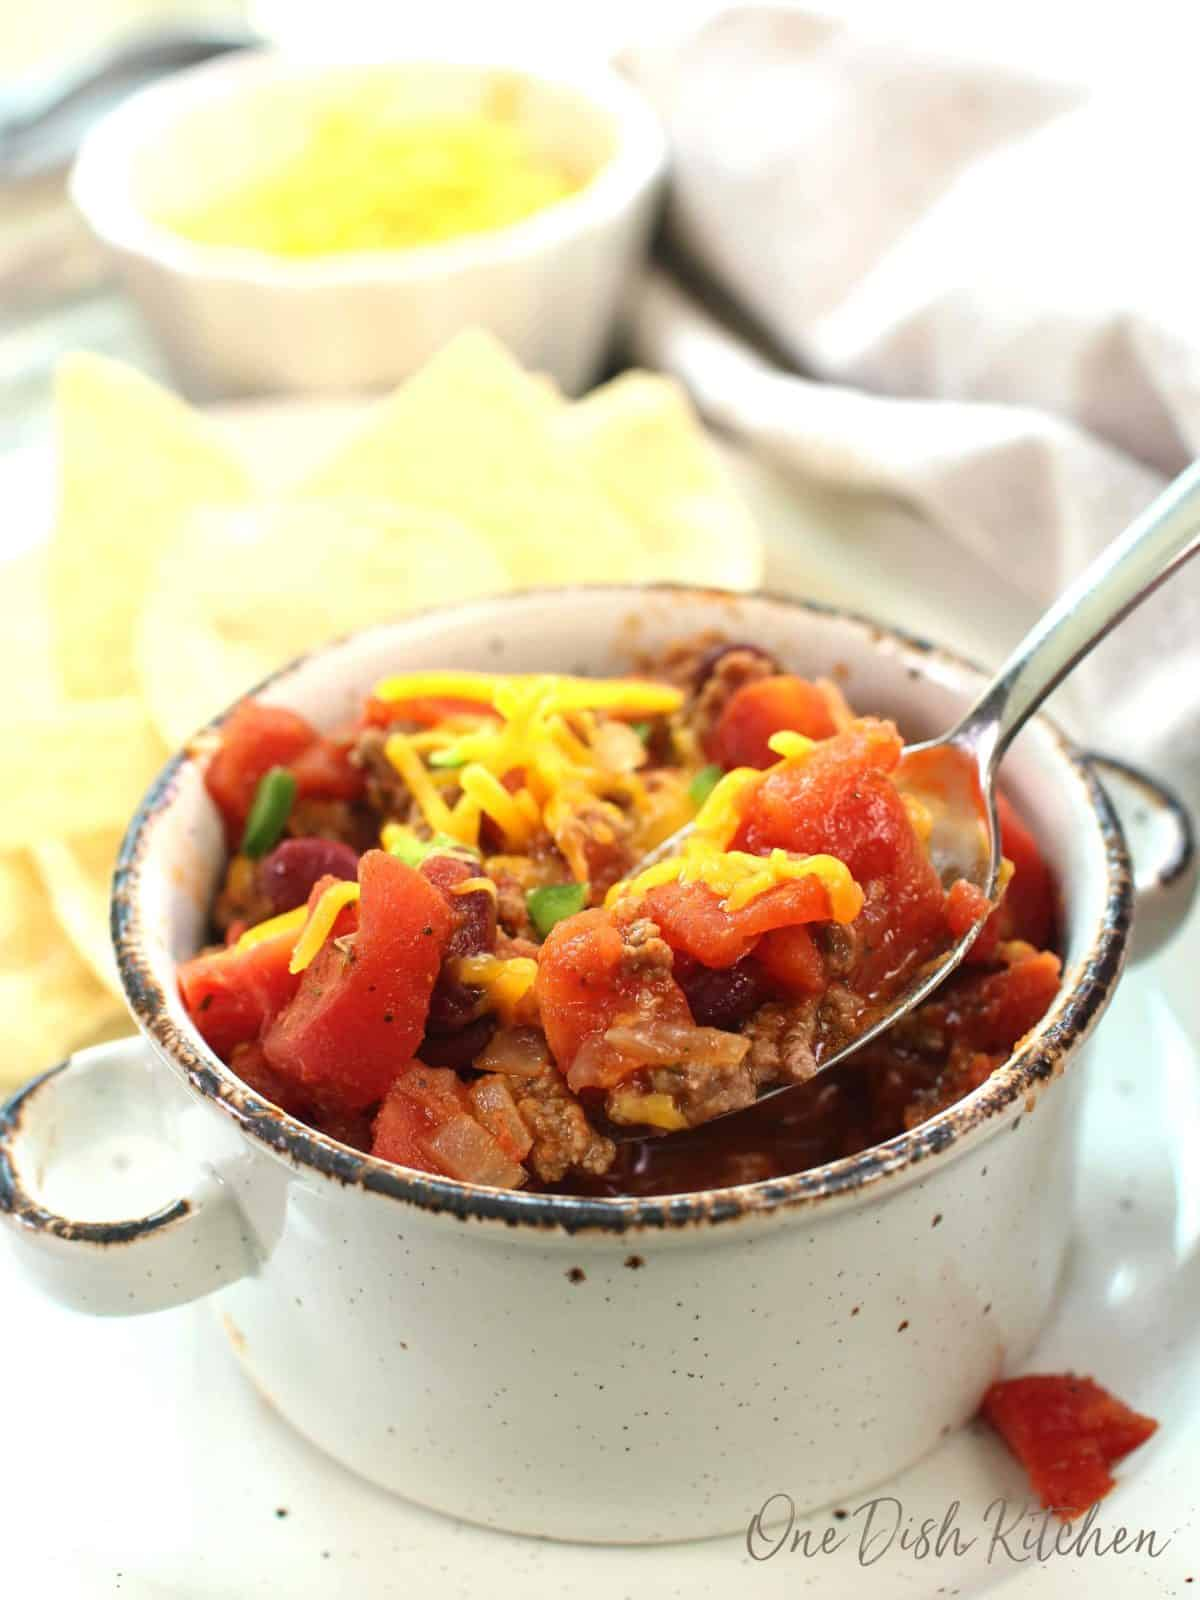 a spoon scooping up chili with tomatoes and shredded cheese.